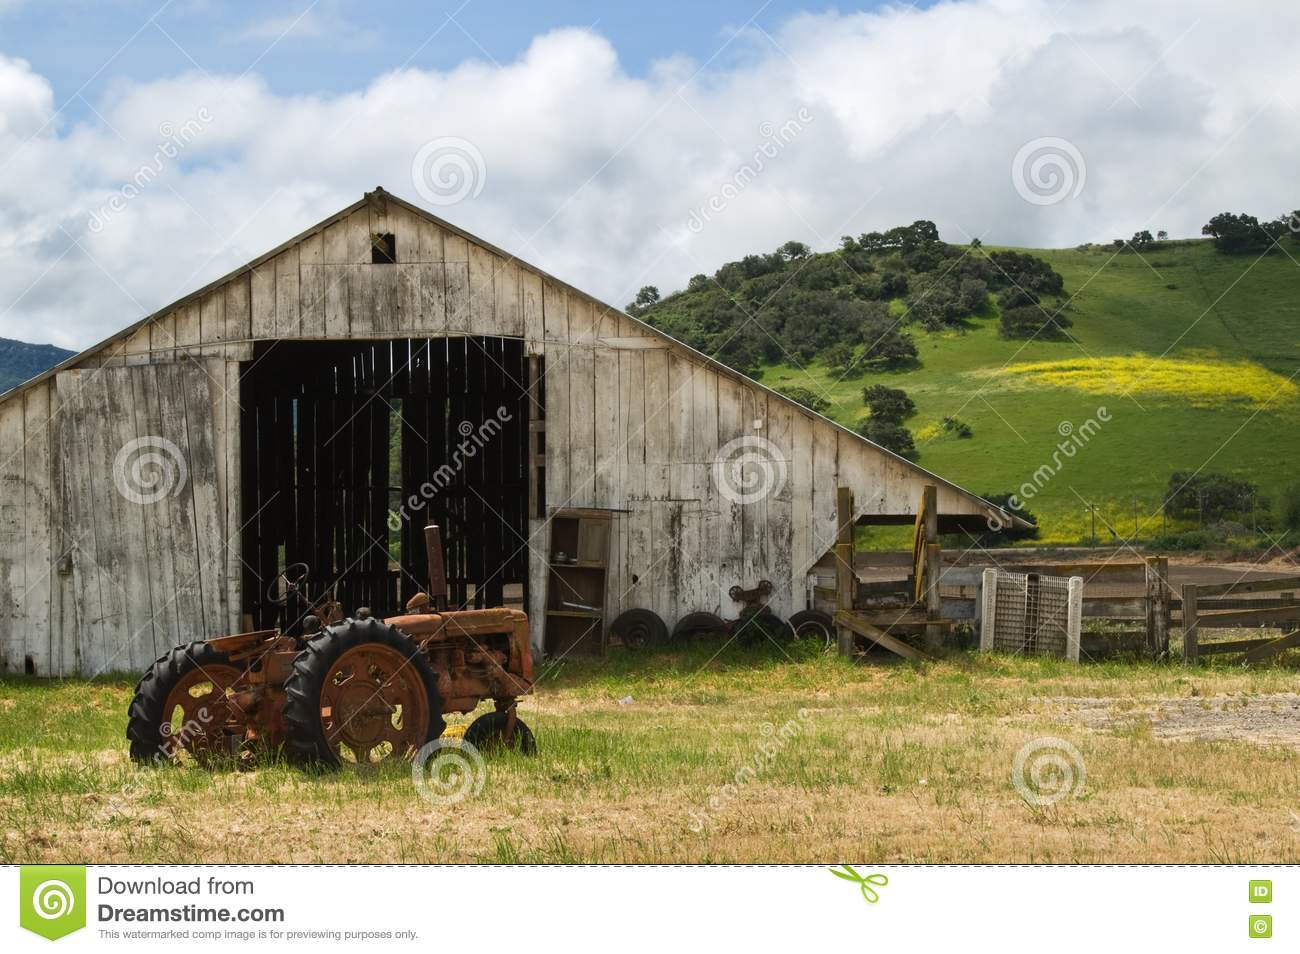 Old Wooden Barn Royalty Free Stock Photo - Image: 20106855